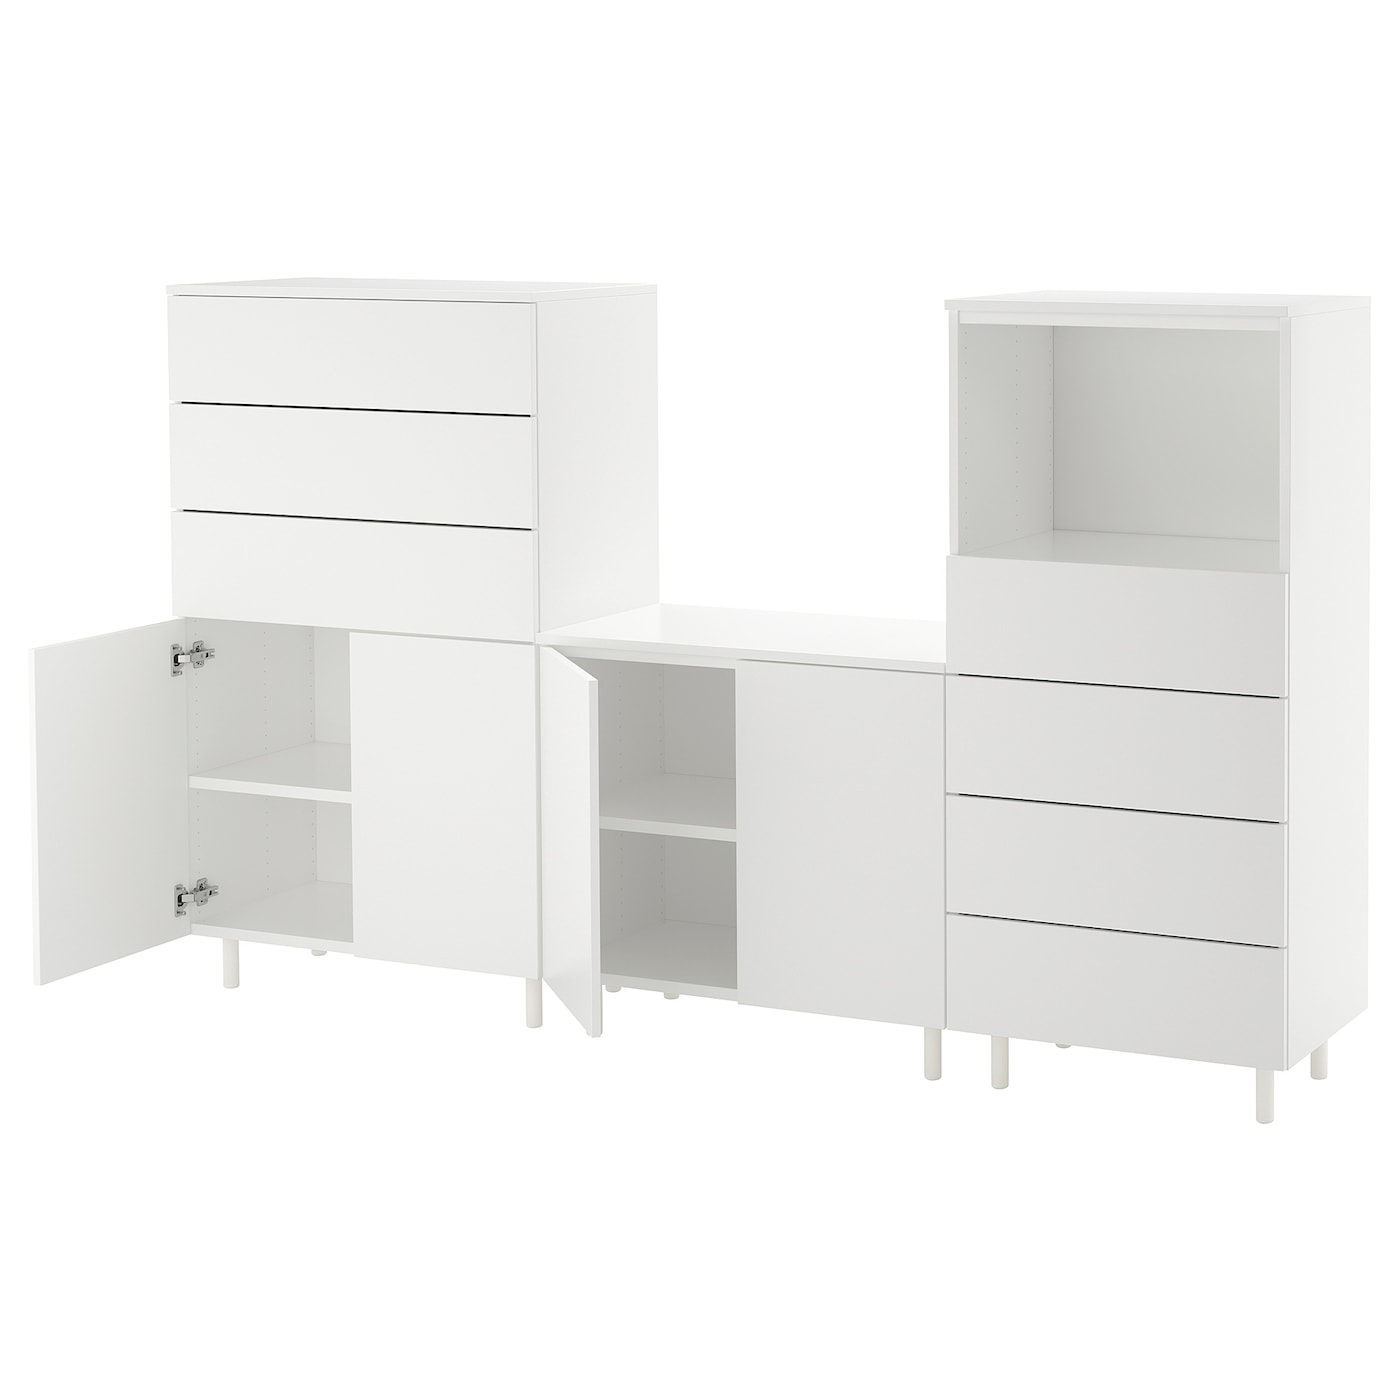 platsa combinaison de rangement blanc fonnes blanc 220 x 42 x 133 cm ikea. Black Bedroom Furniture Sets. Home Design Ideas